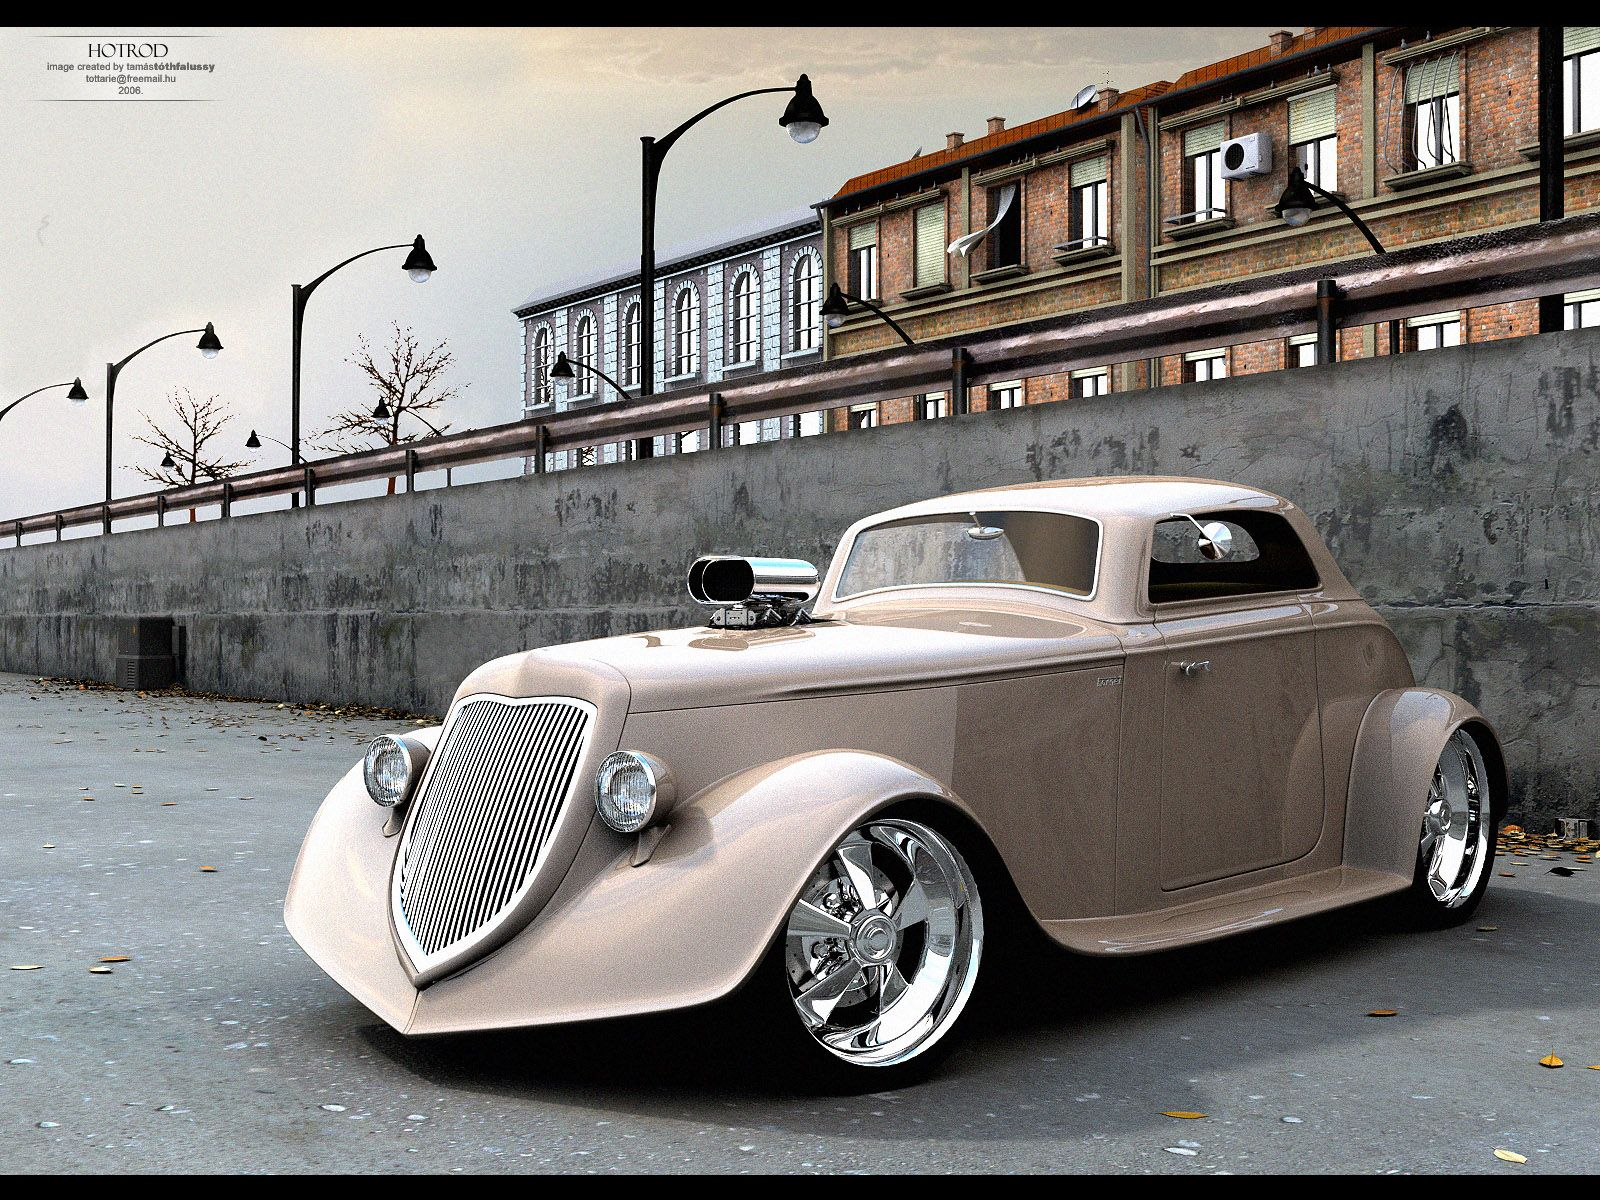 Image Detail for - Ford Hot Rod Bild - Auto Pixx Brought to you by ...